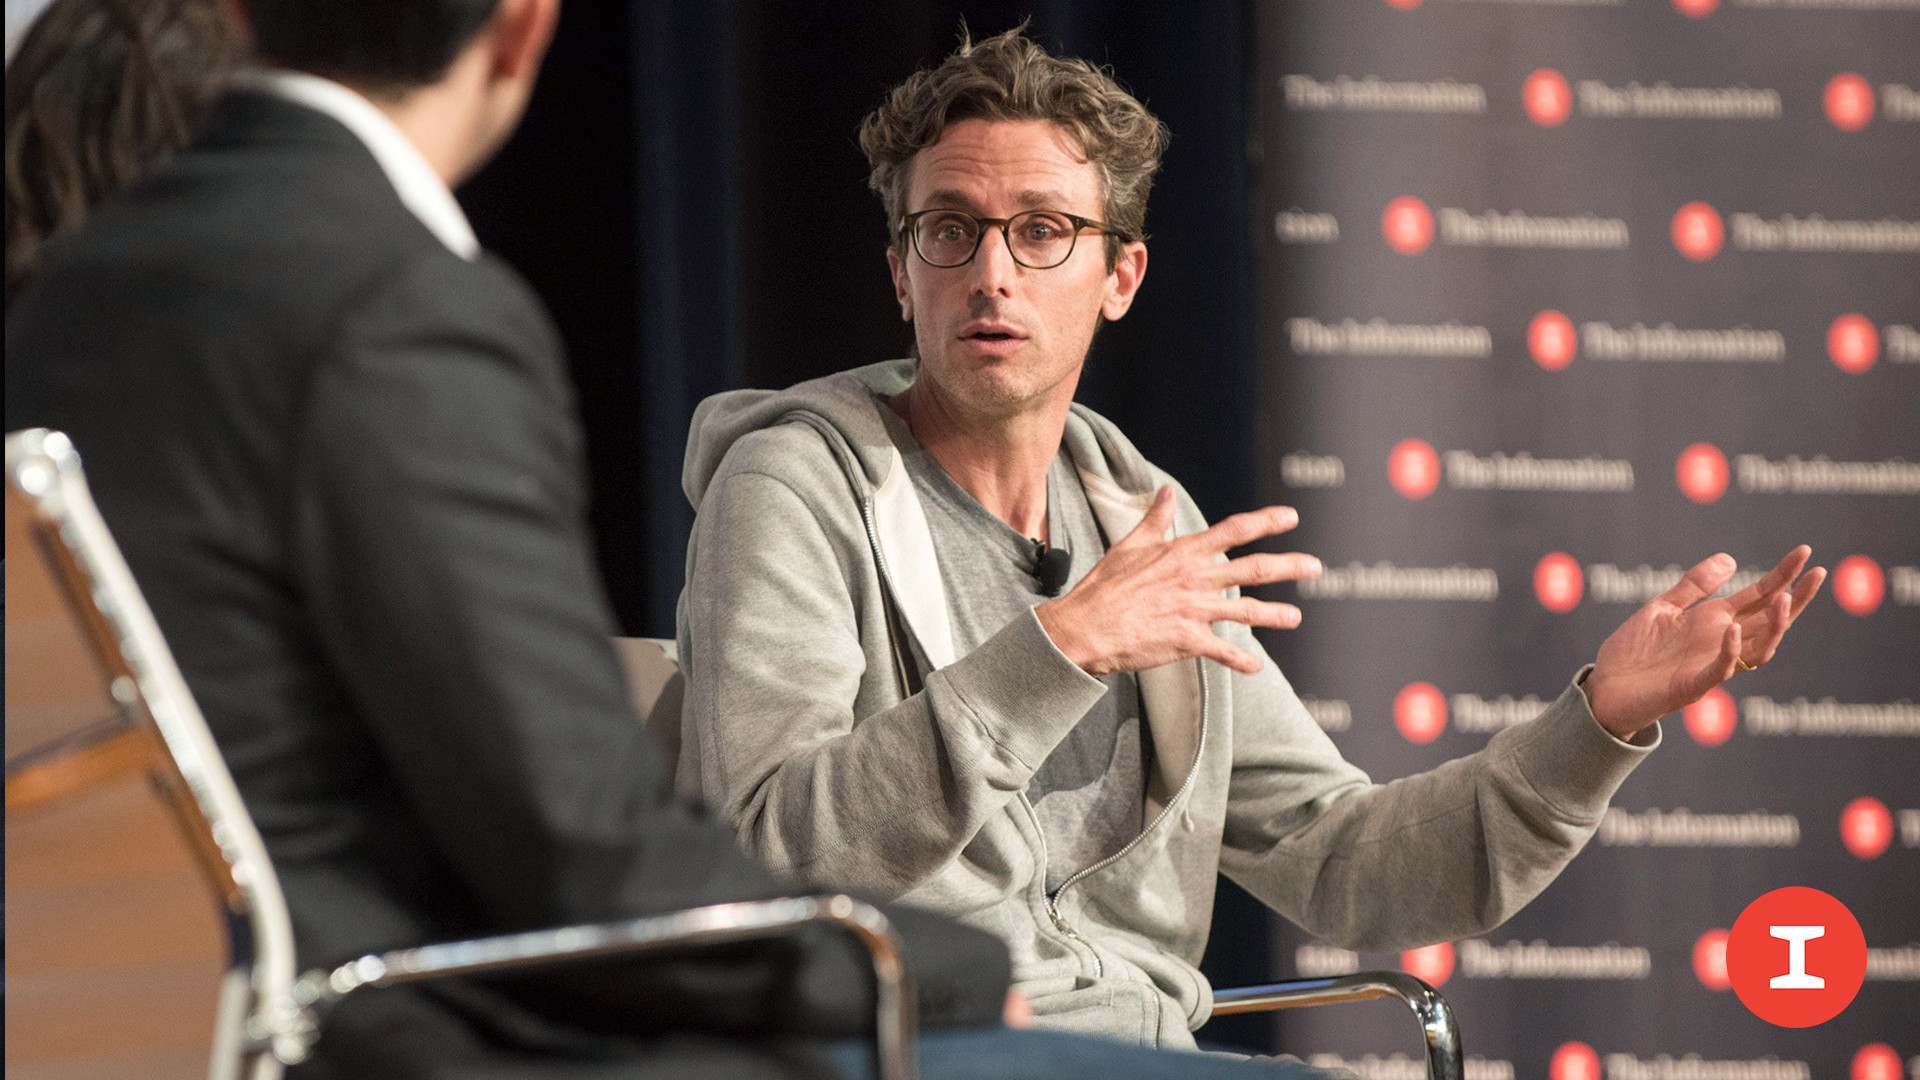 BuzzFeed's Peretti Talks About Media and Democracy